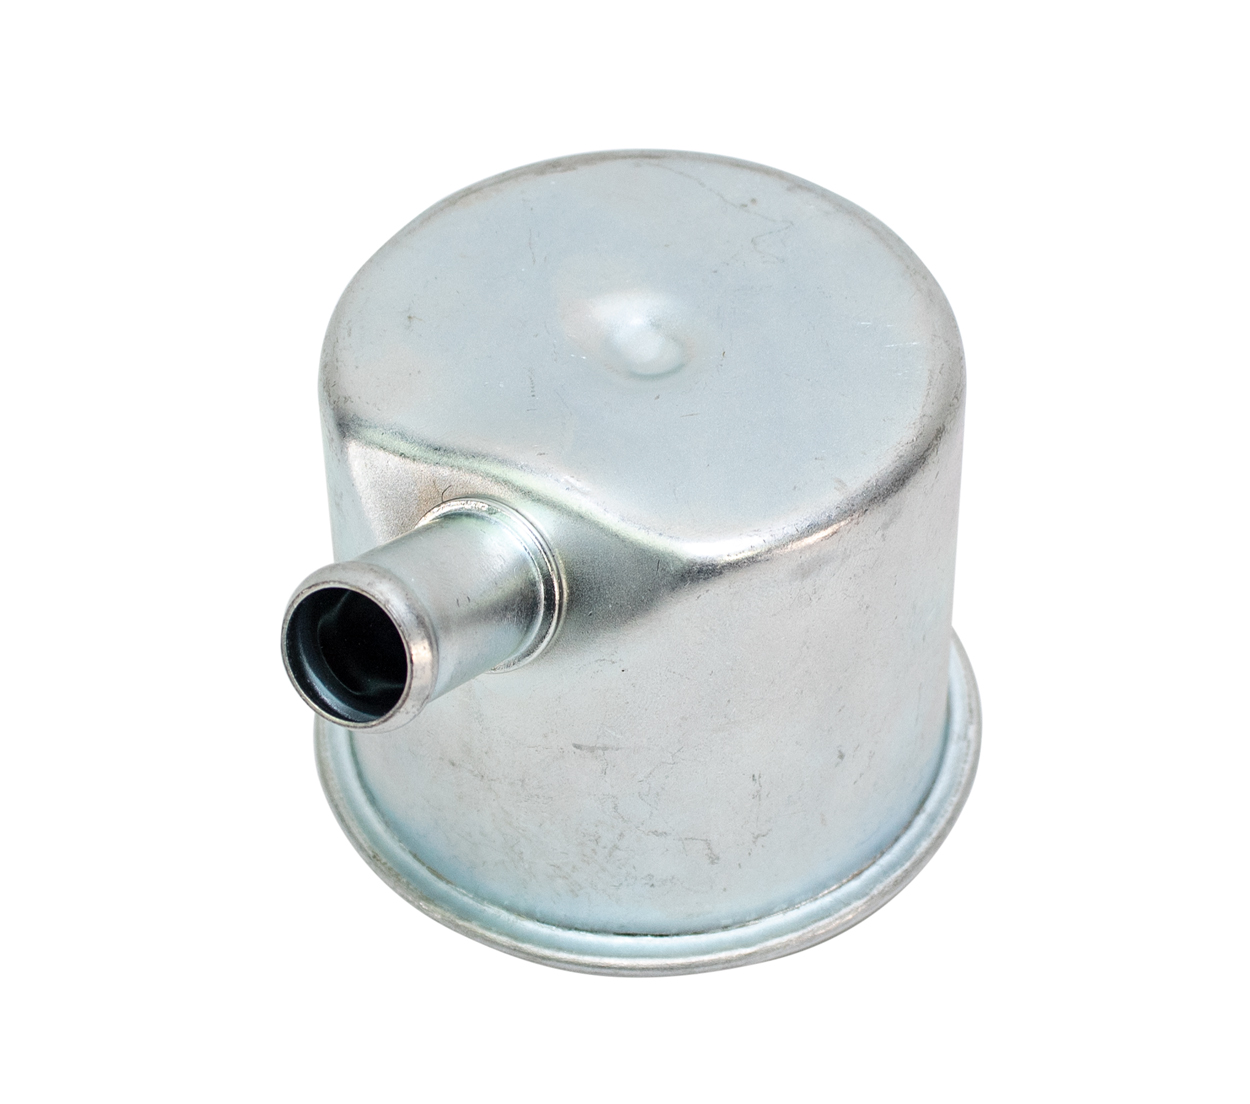 70-up Mopar Oil Filler Breather Cap w/ 1 Hose Outlet